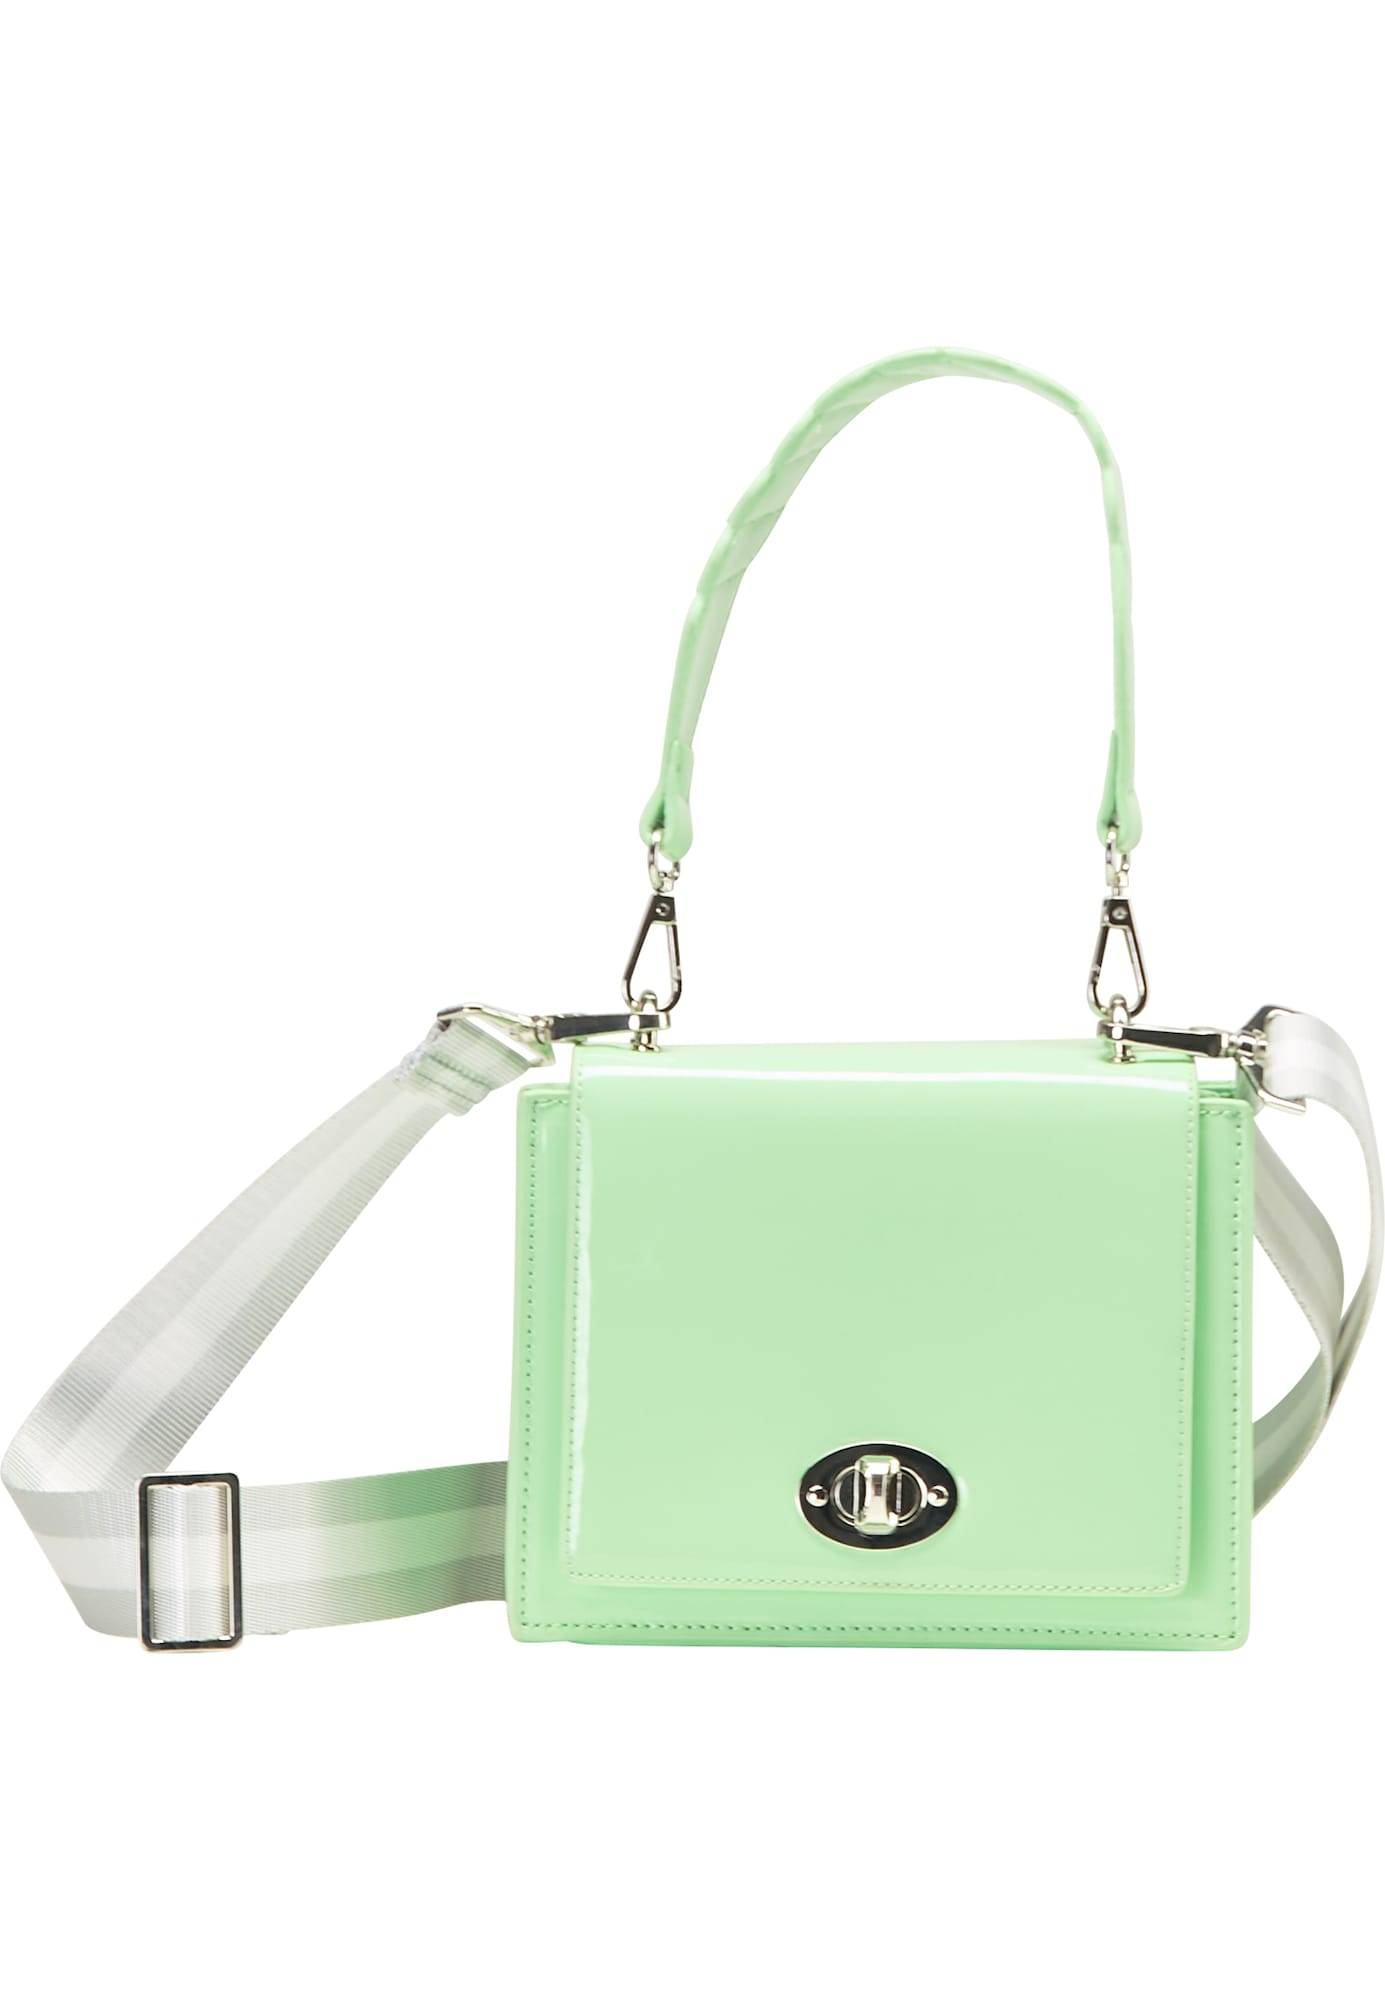 MYMO Sac bandoulière  - Vert - Taille: One Size - female